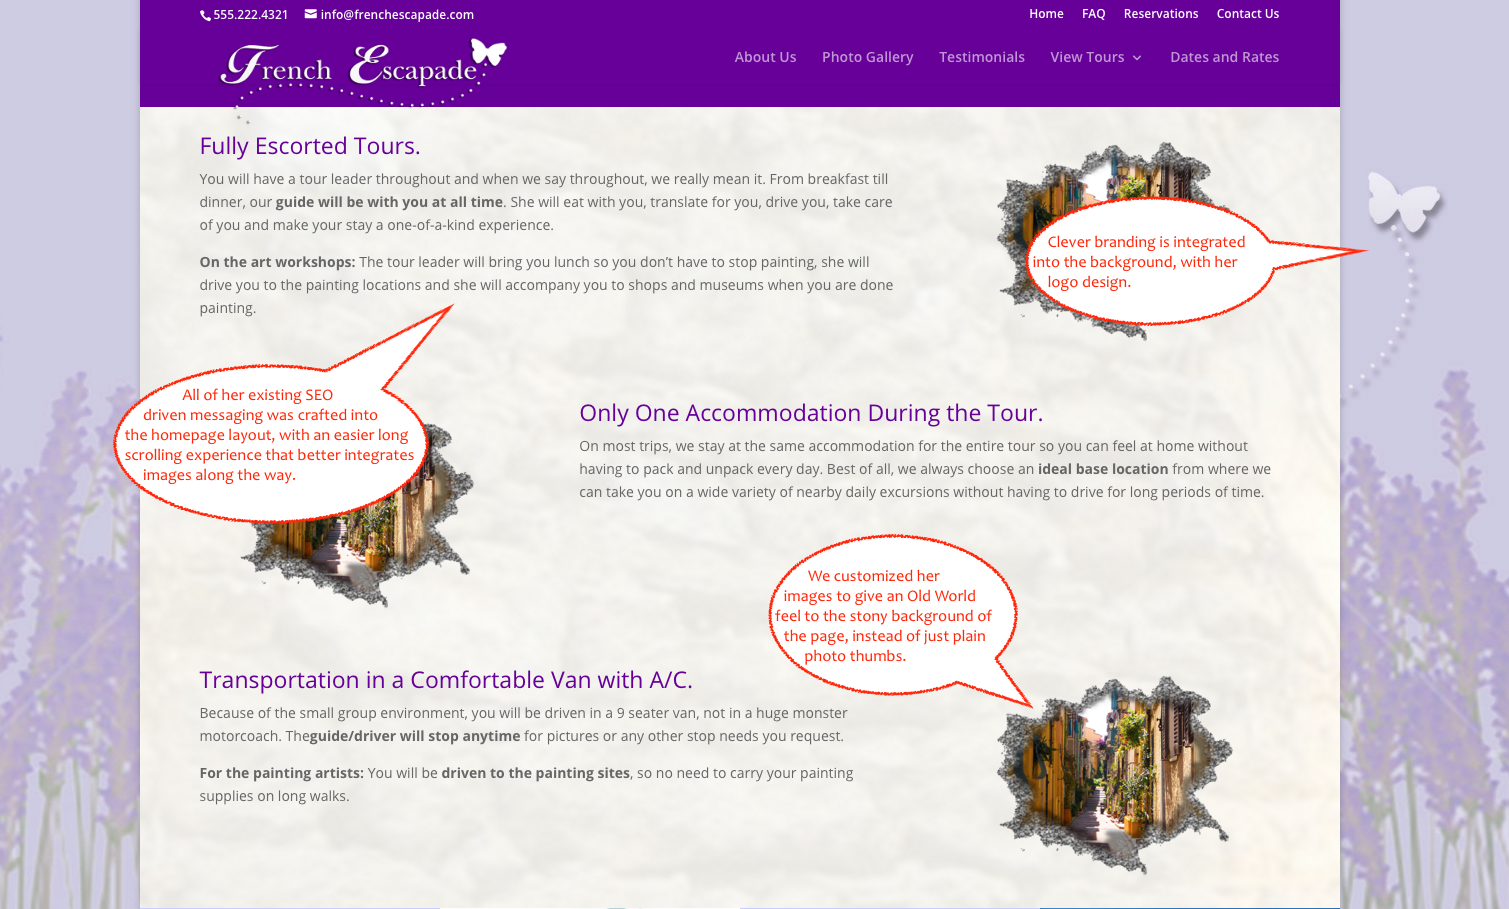 French Escapade Home Balance Text - Another Awesome qualiant Web Design Project